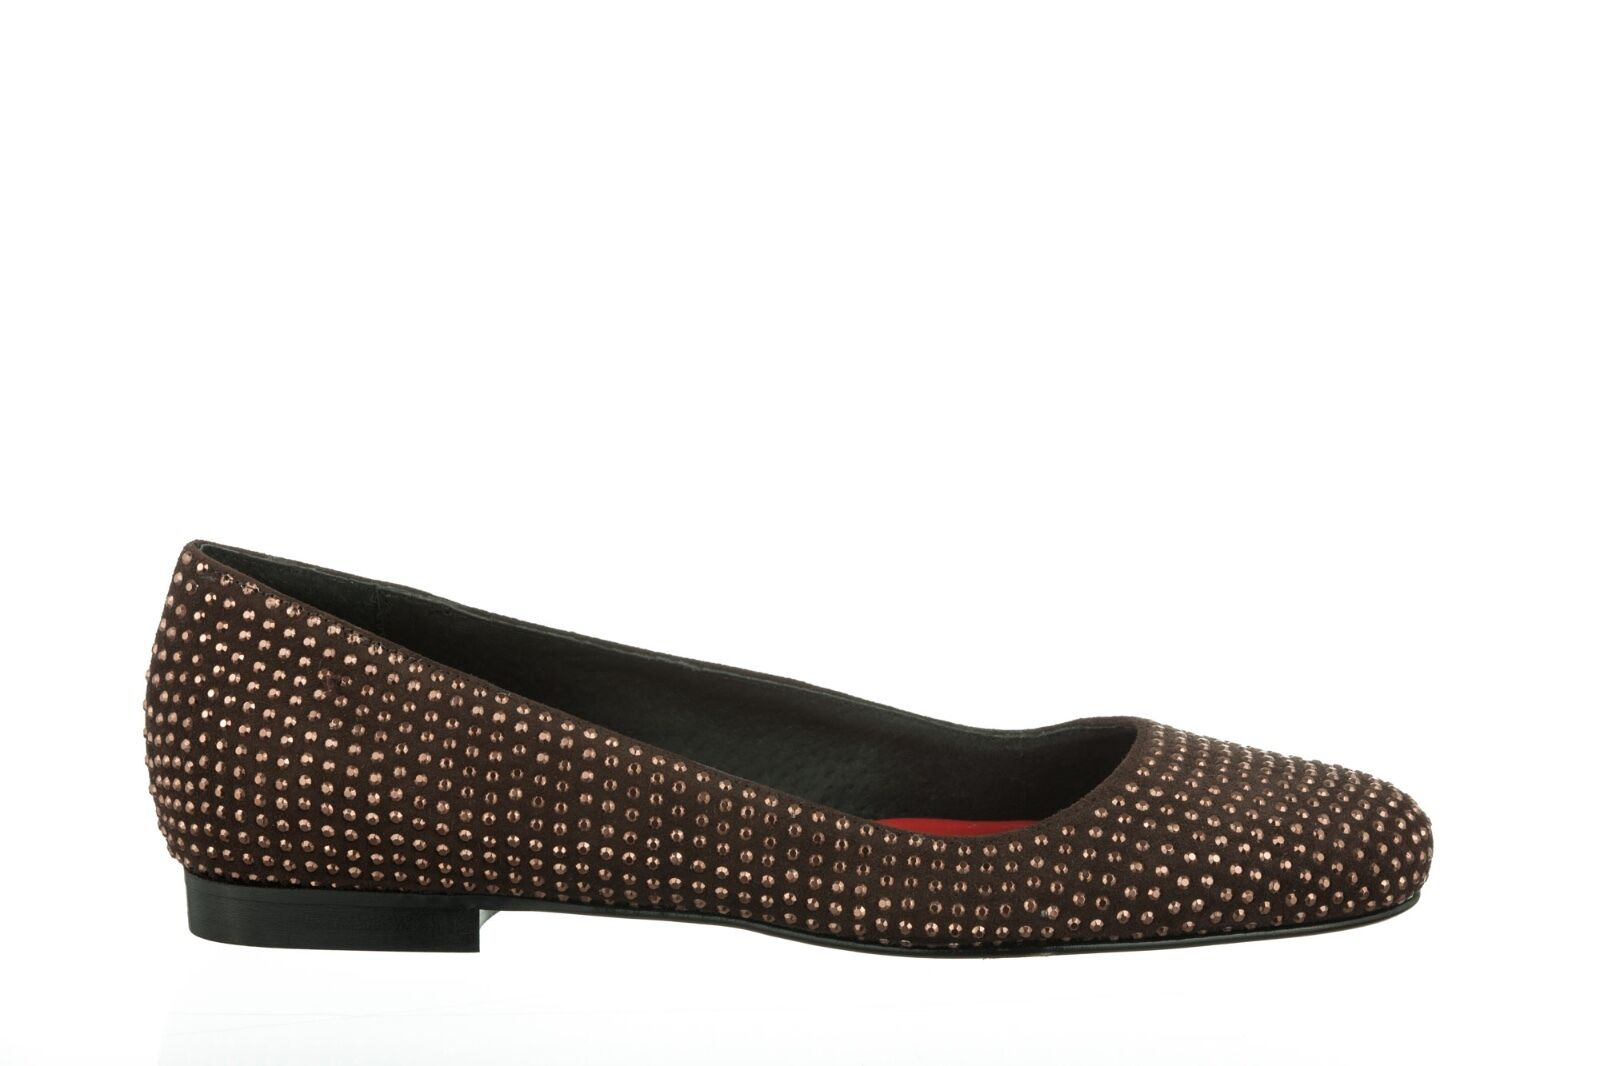 MORI MADE FLATS IN ITALY FLATS MADE SCHUHE Schuhe BALLERINA CRYSTAL LEATHER BROWN MARRONE 40 5c5f8b